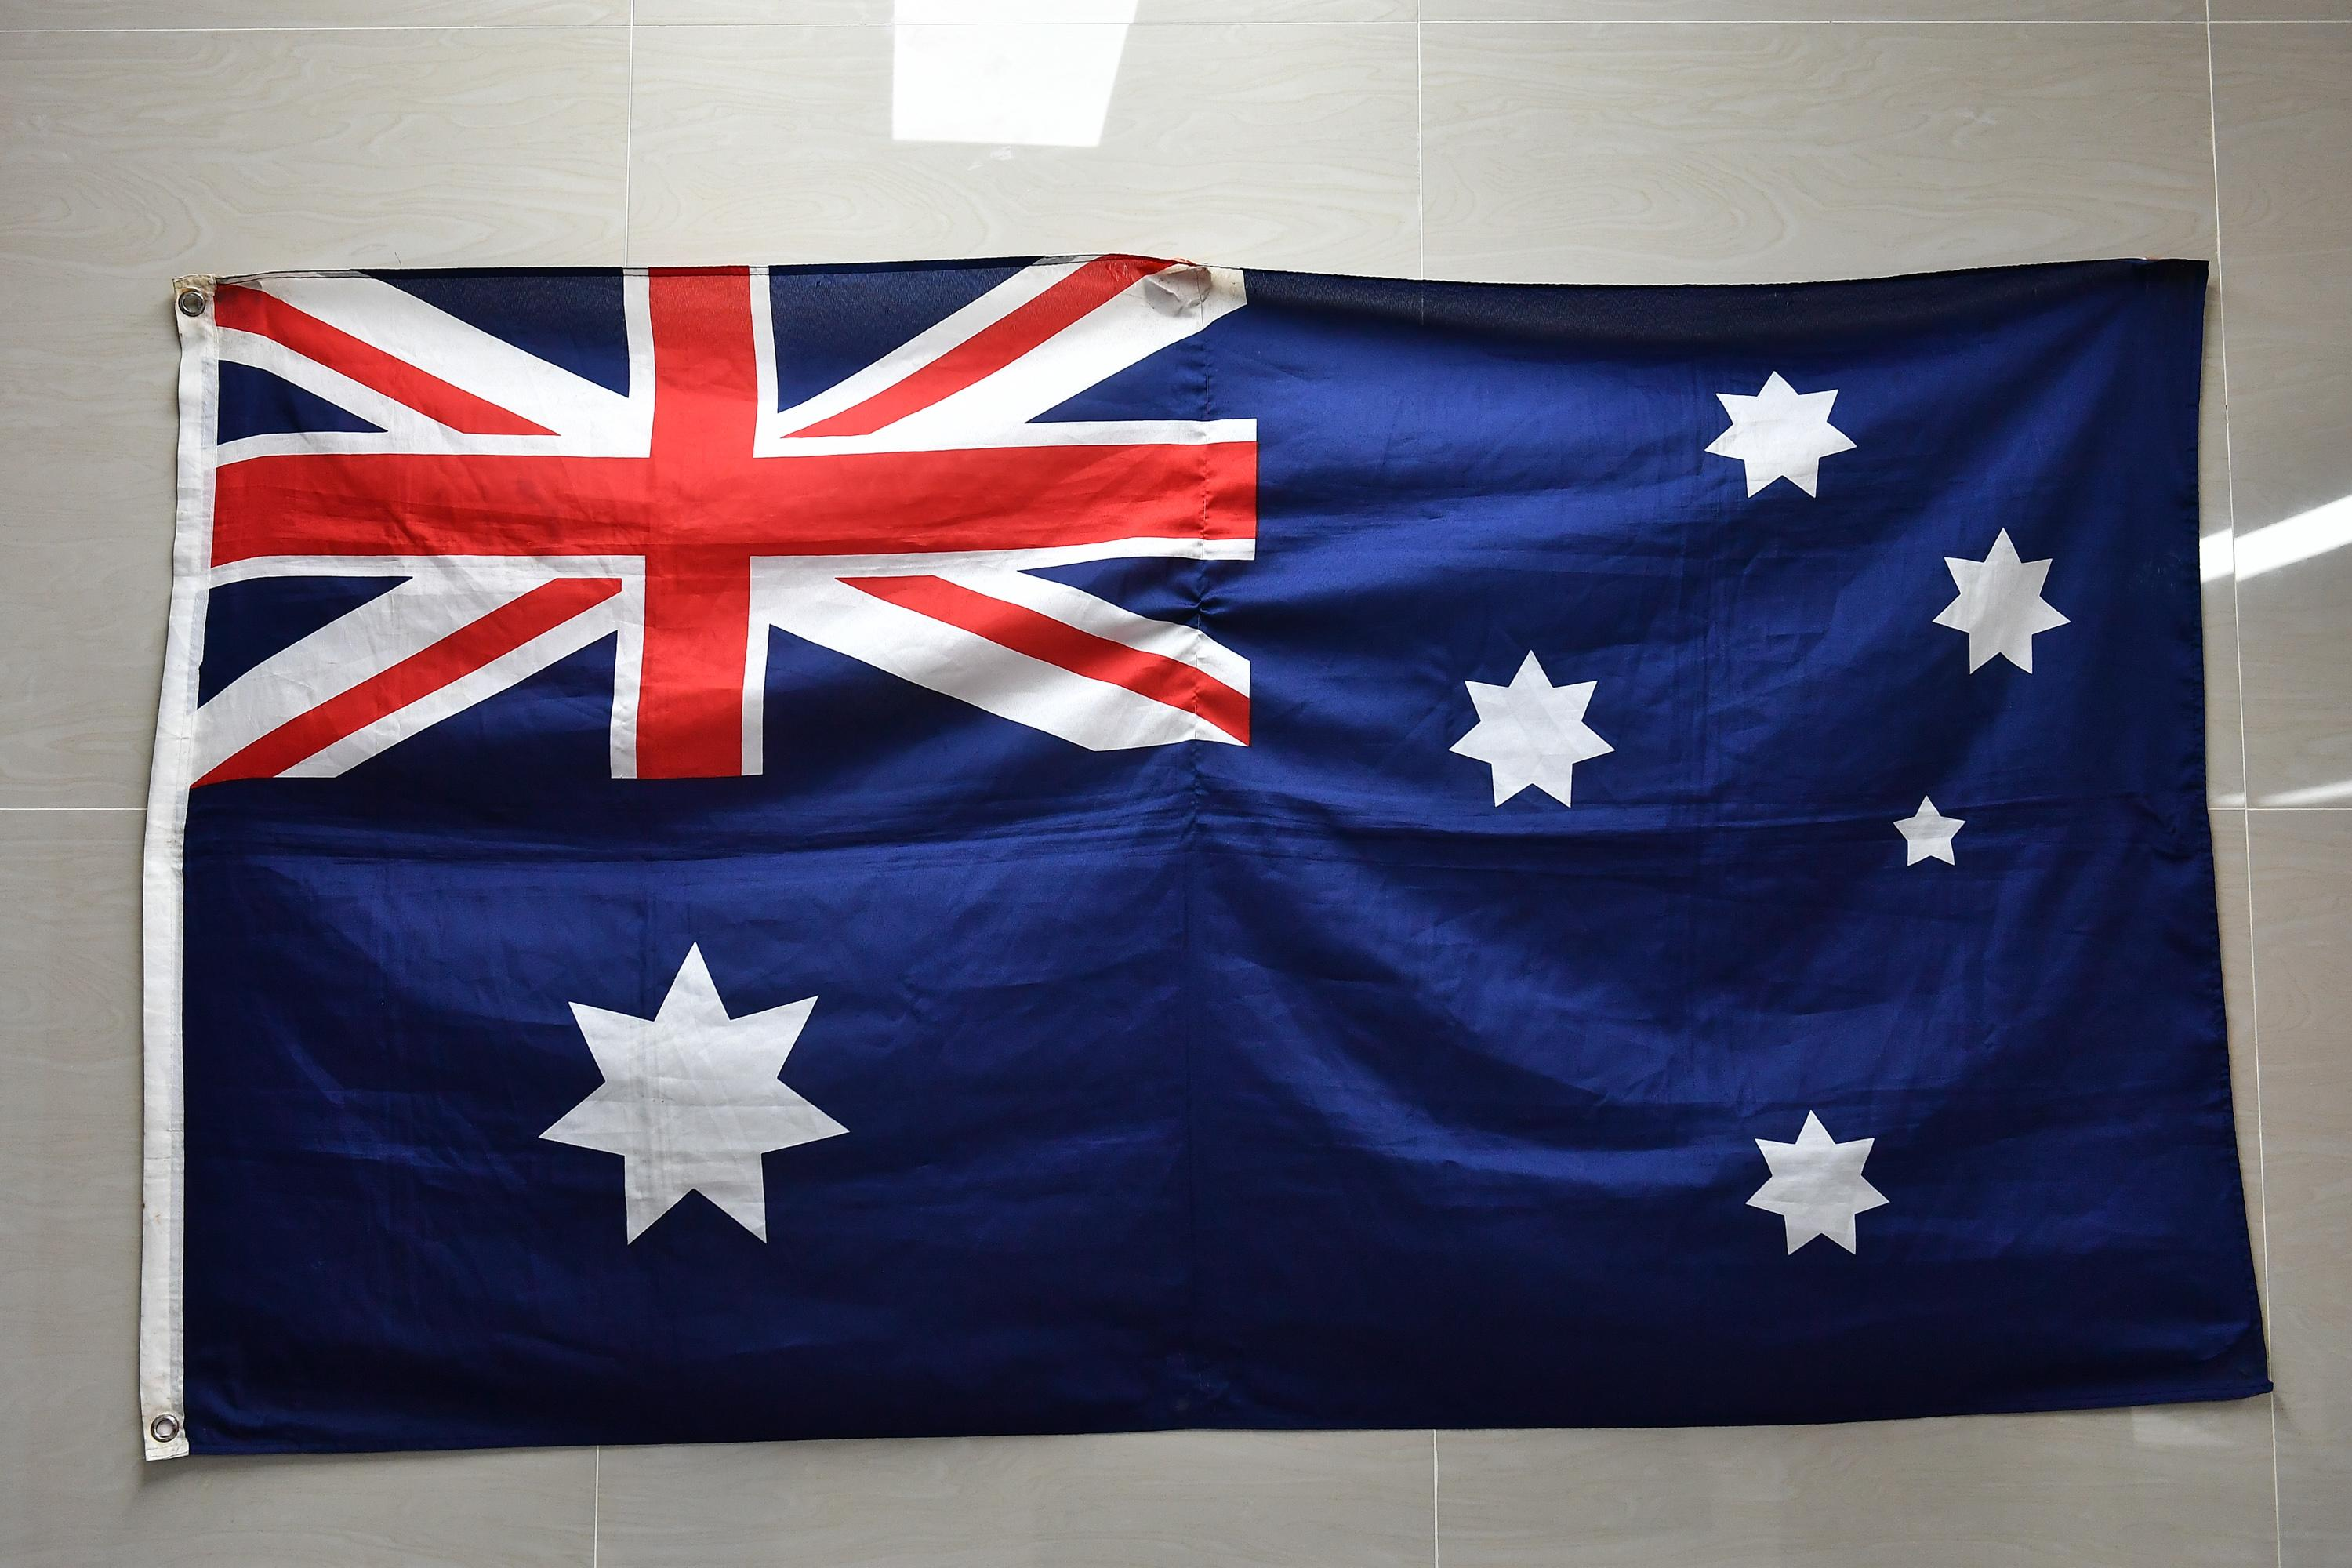 Australian government sues Google for misleading consumers in data collection | Engadget